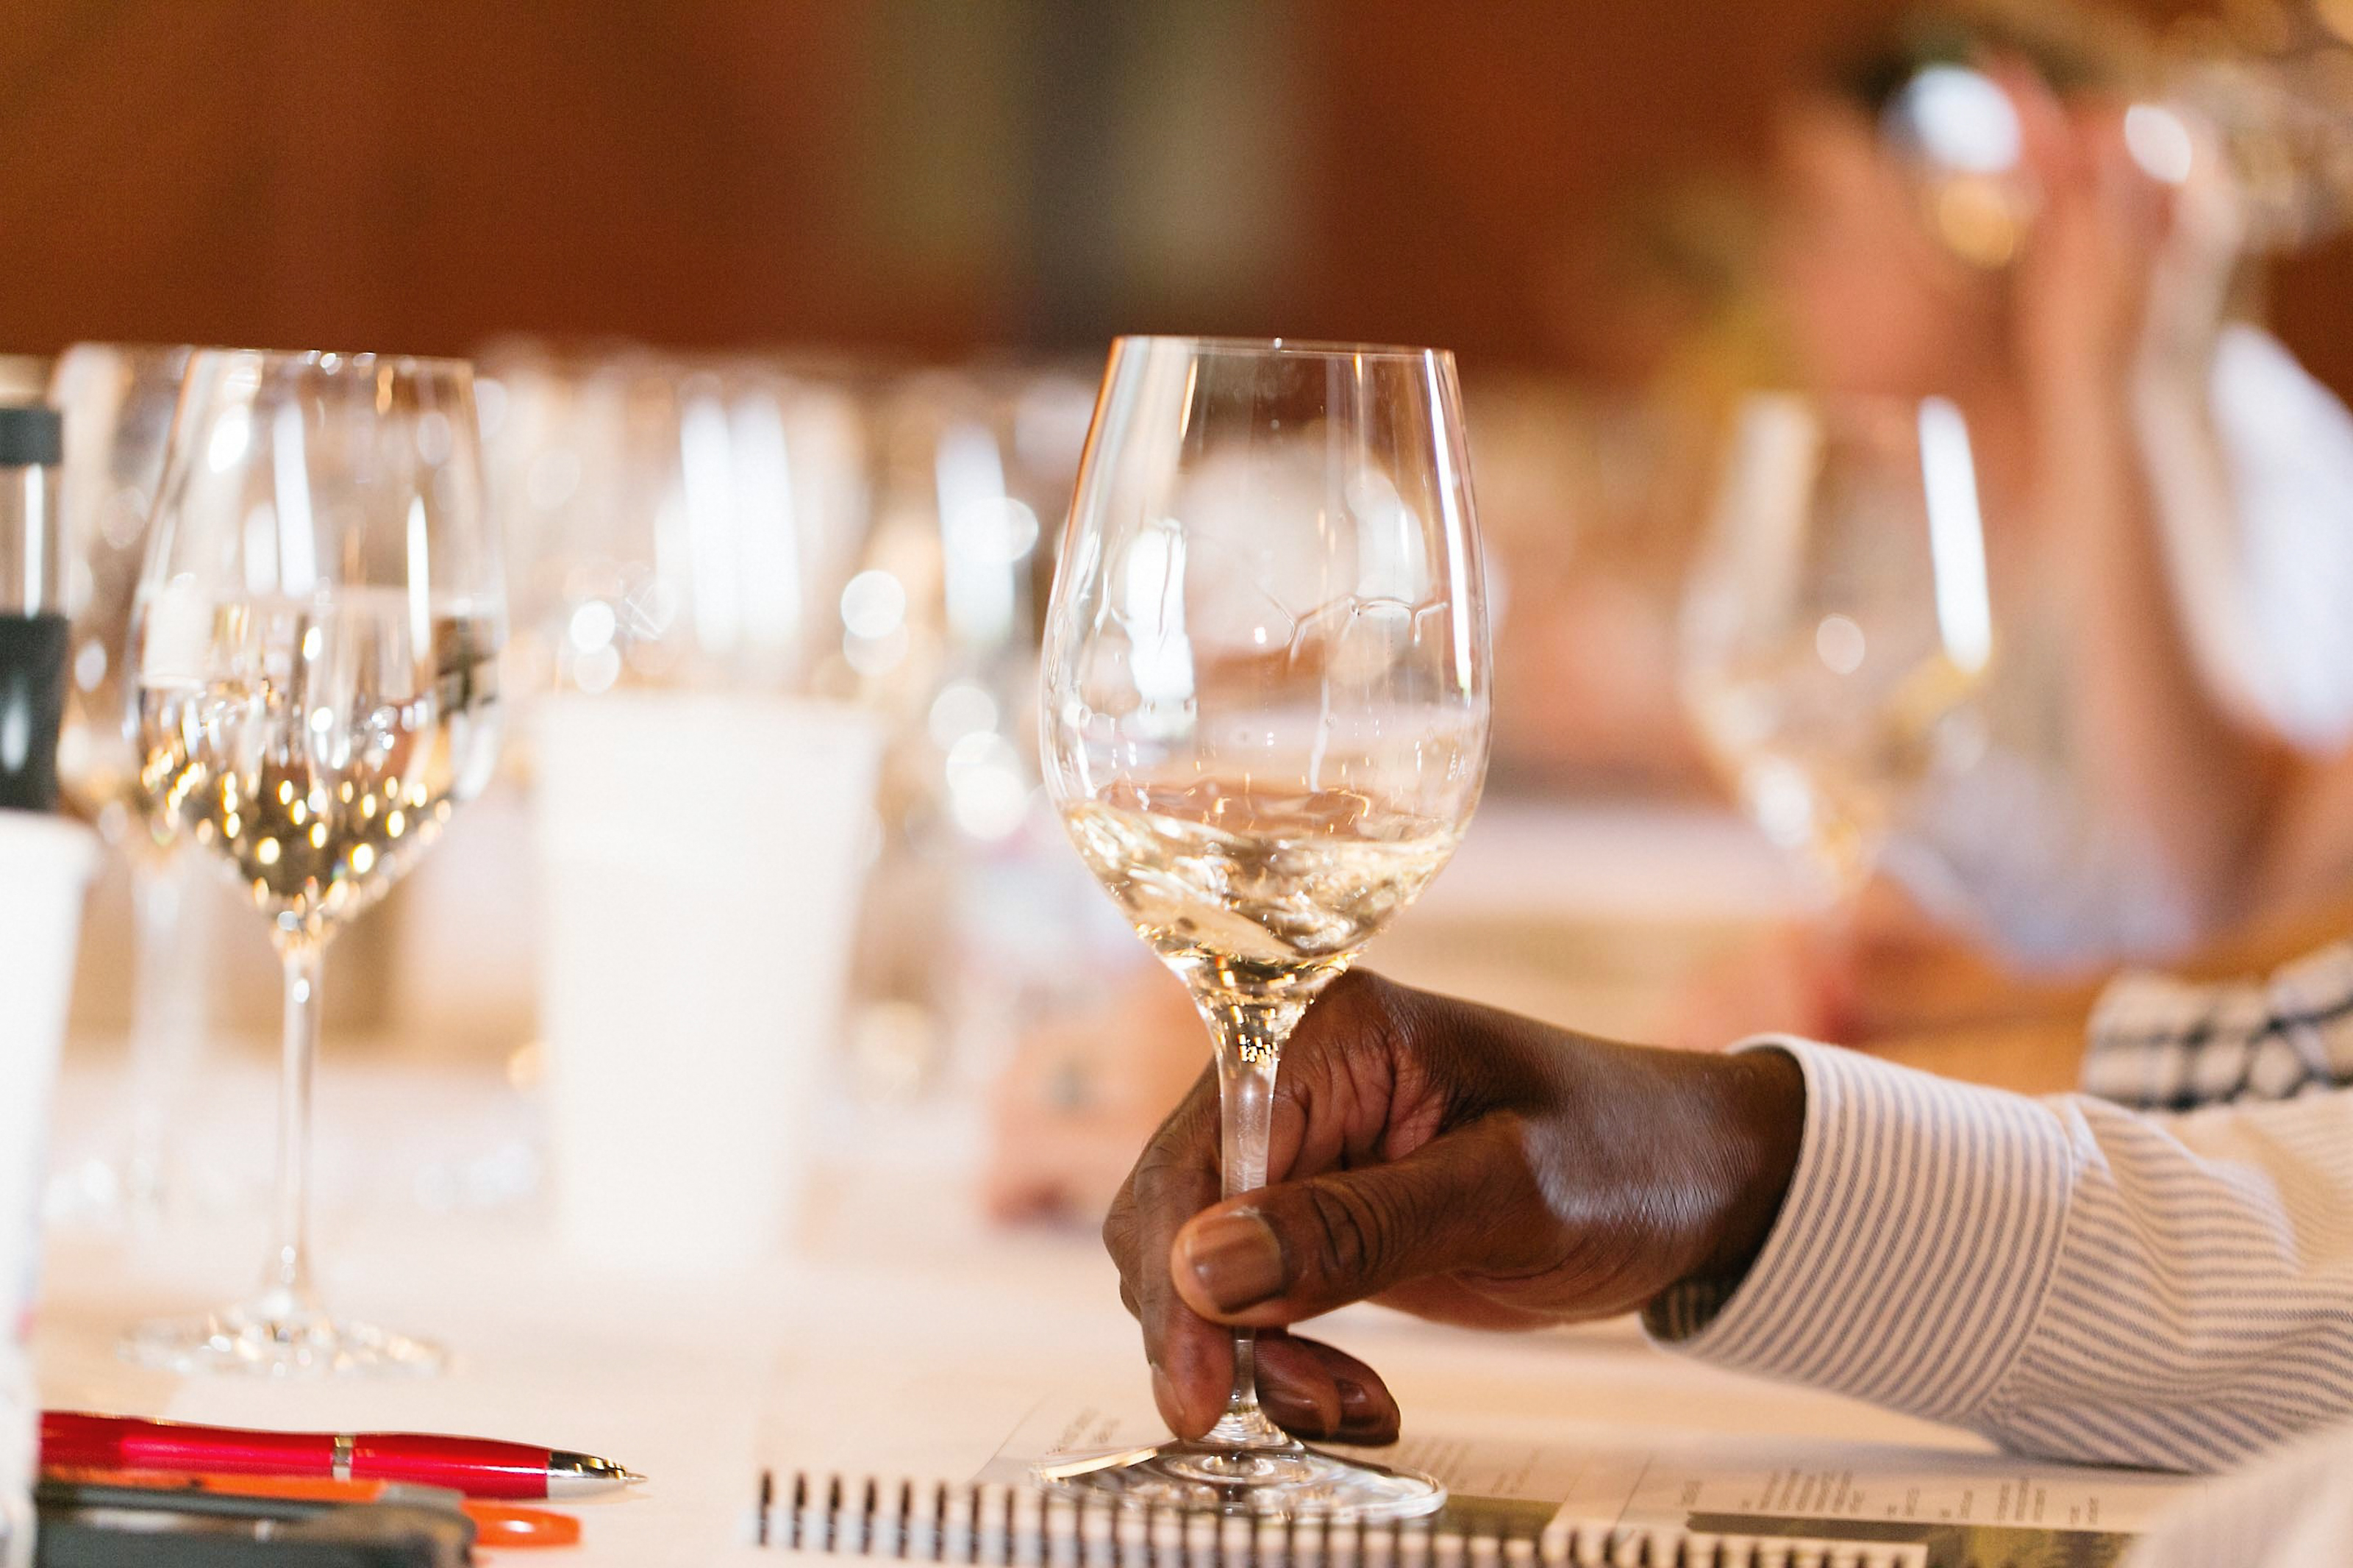 San Francisco Wine School - a Minerality in Wine tasting